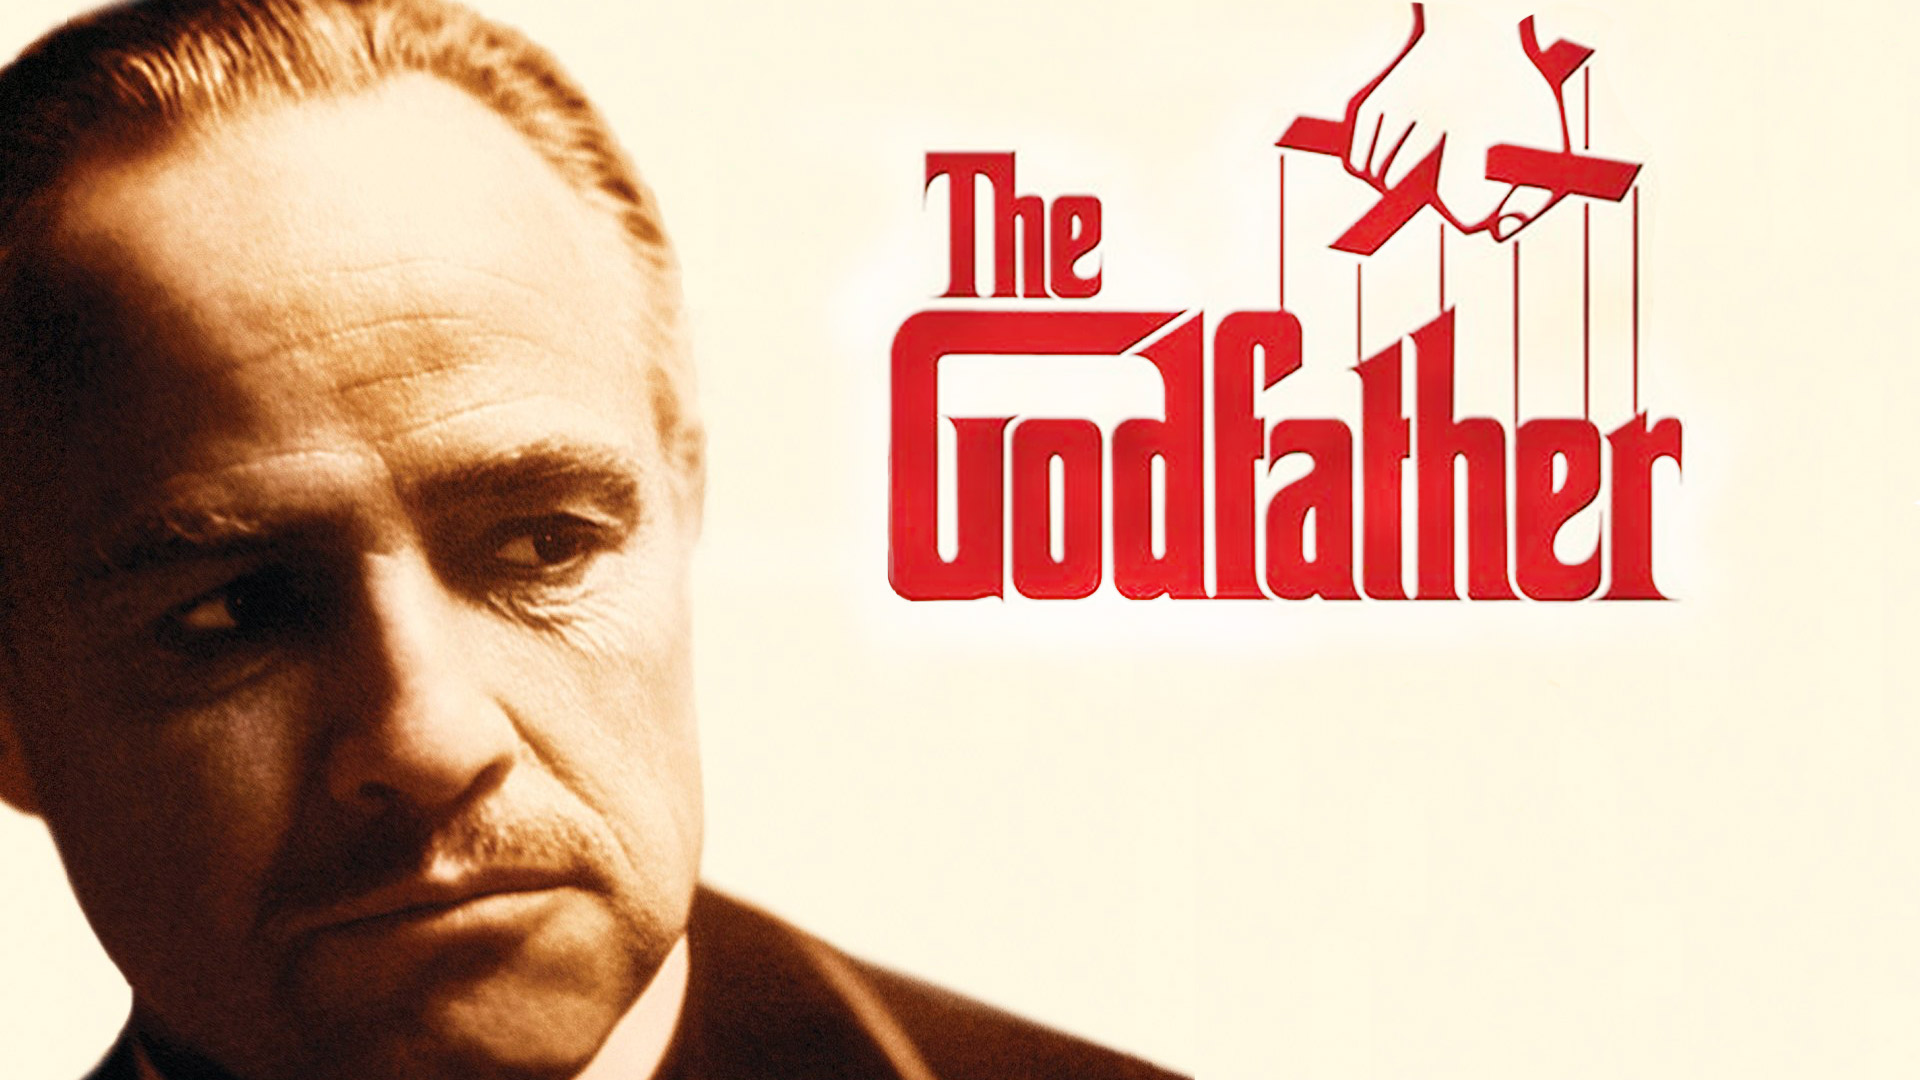 watch godfather 3 online free without downloading